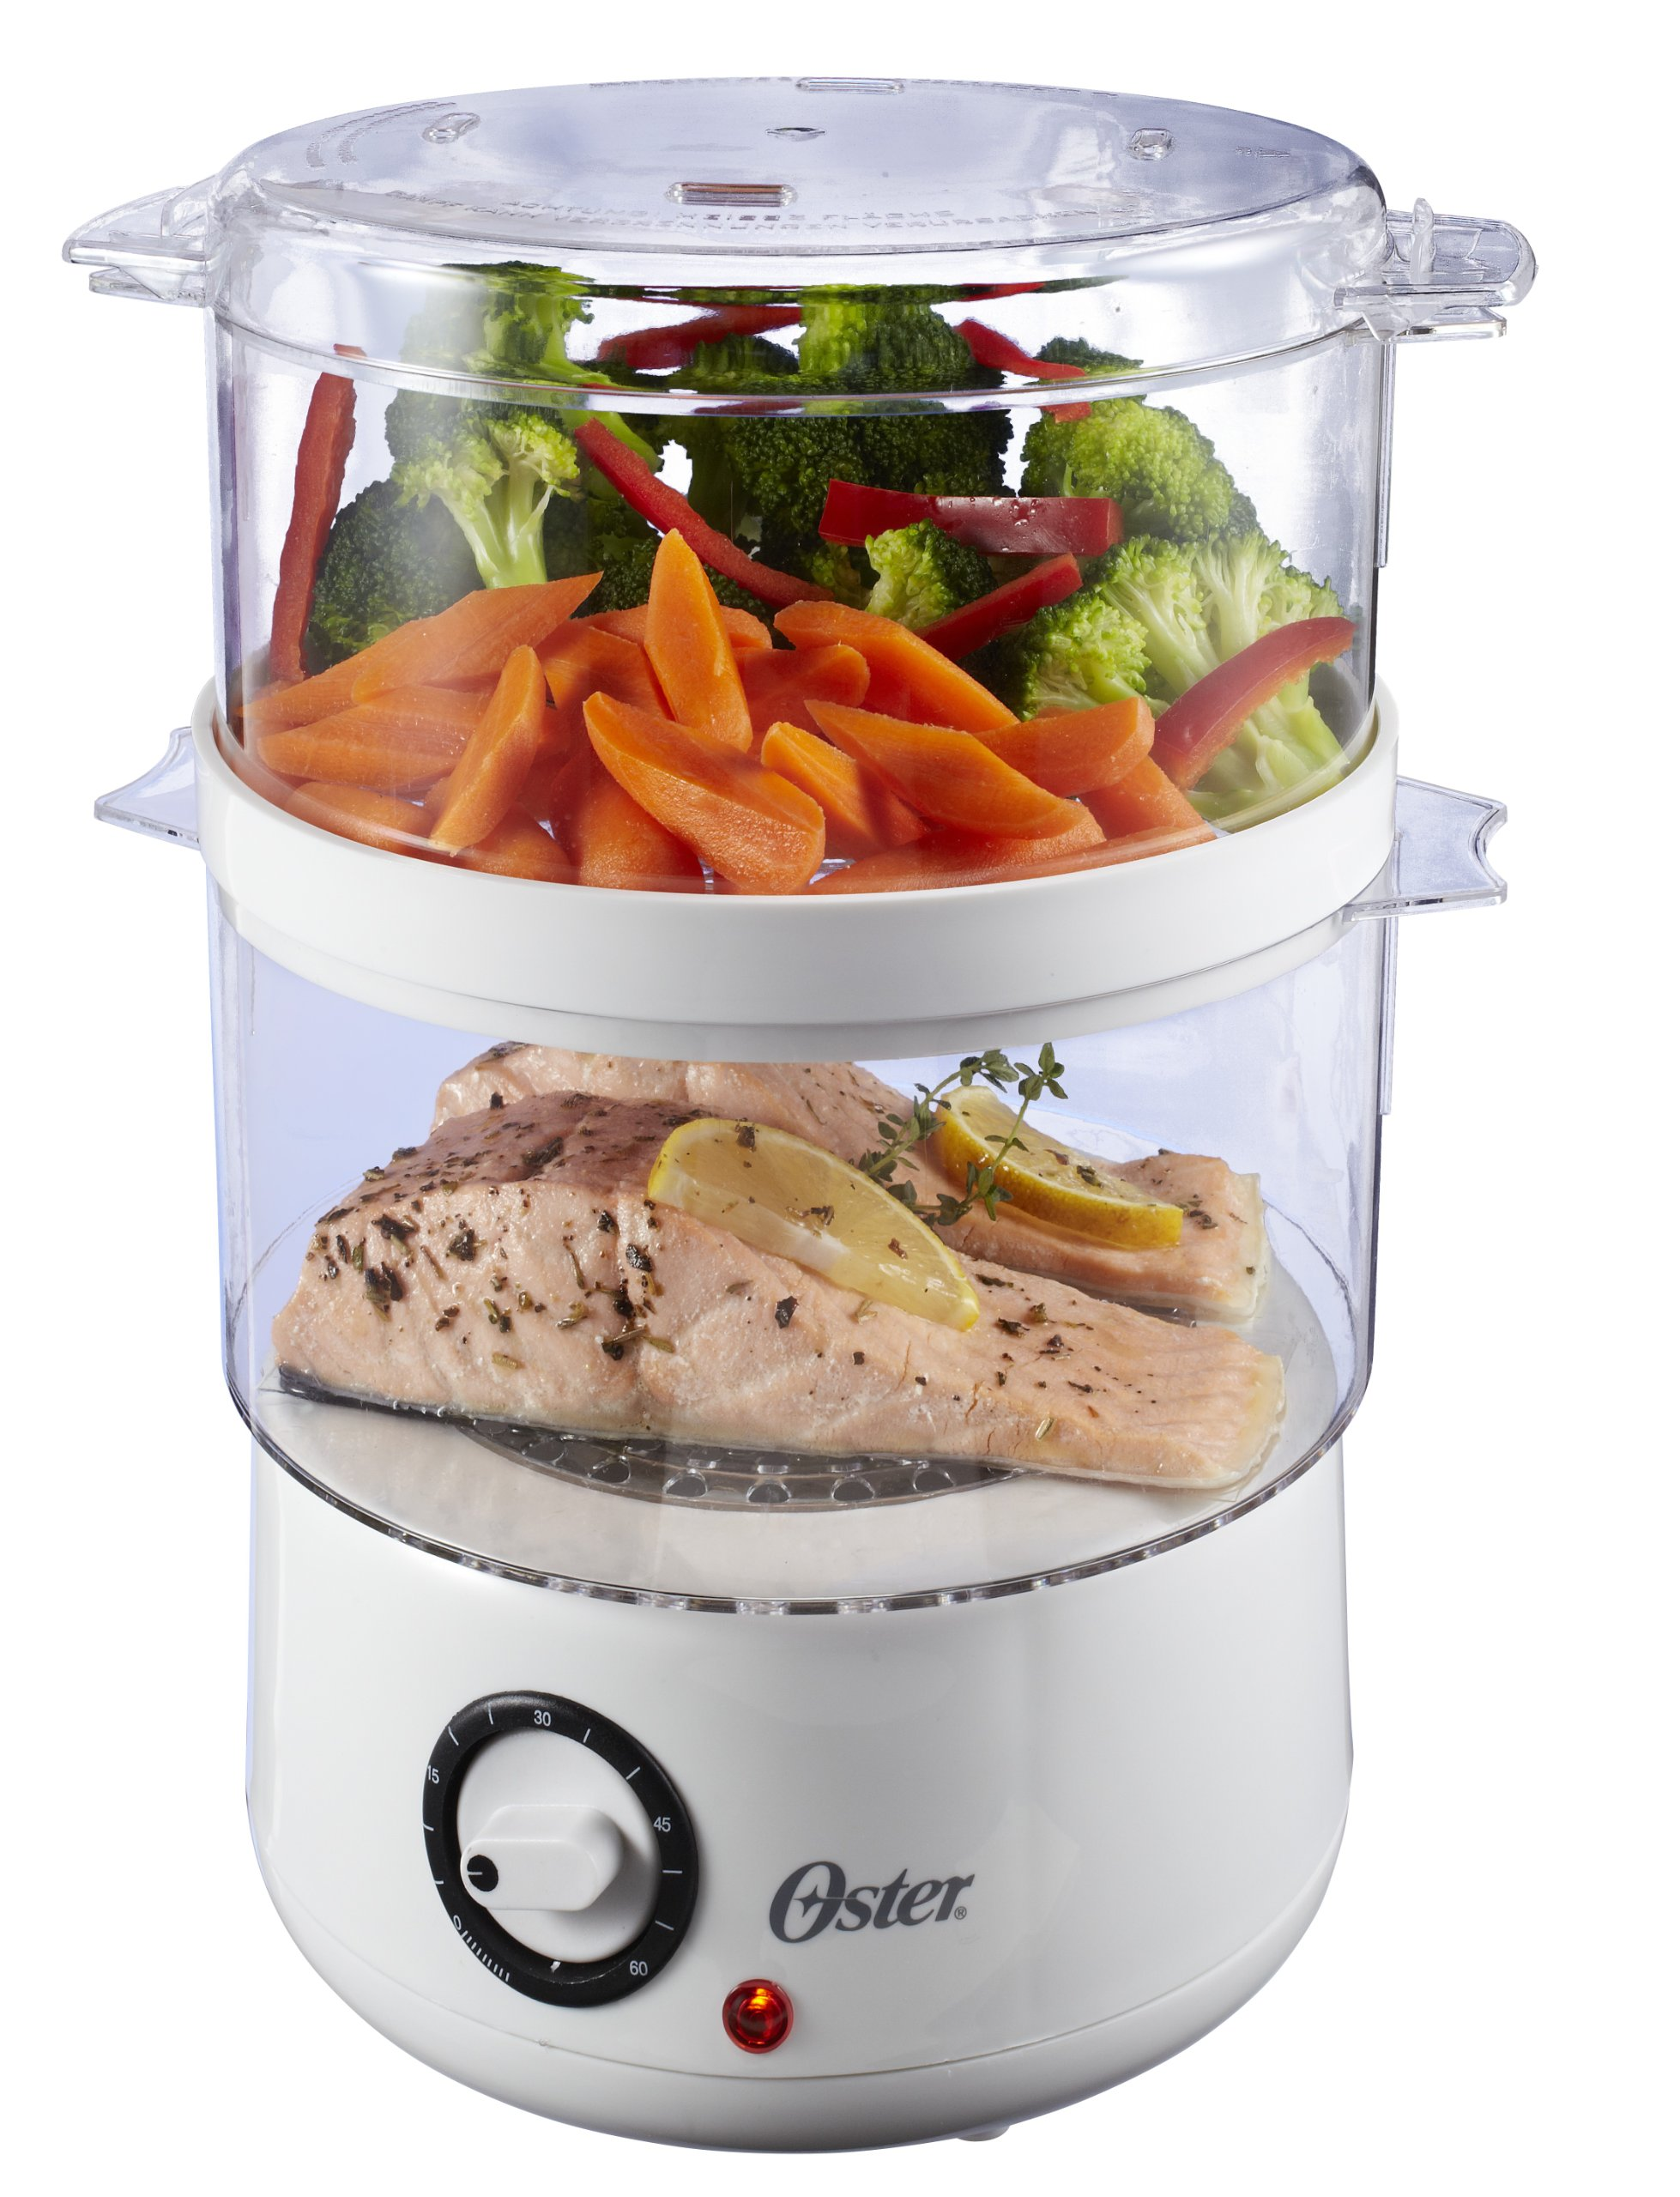 Oster CKSTSTMD5-W 5-Quart Food Steamer Via Amazon